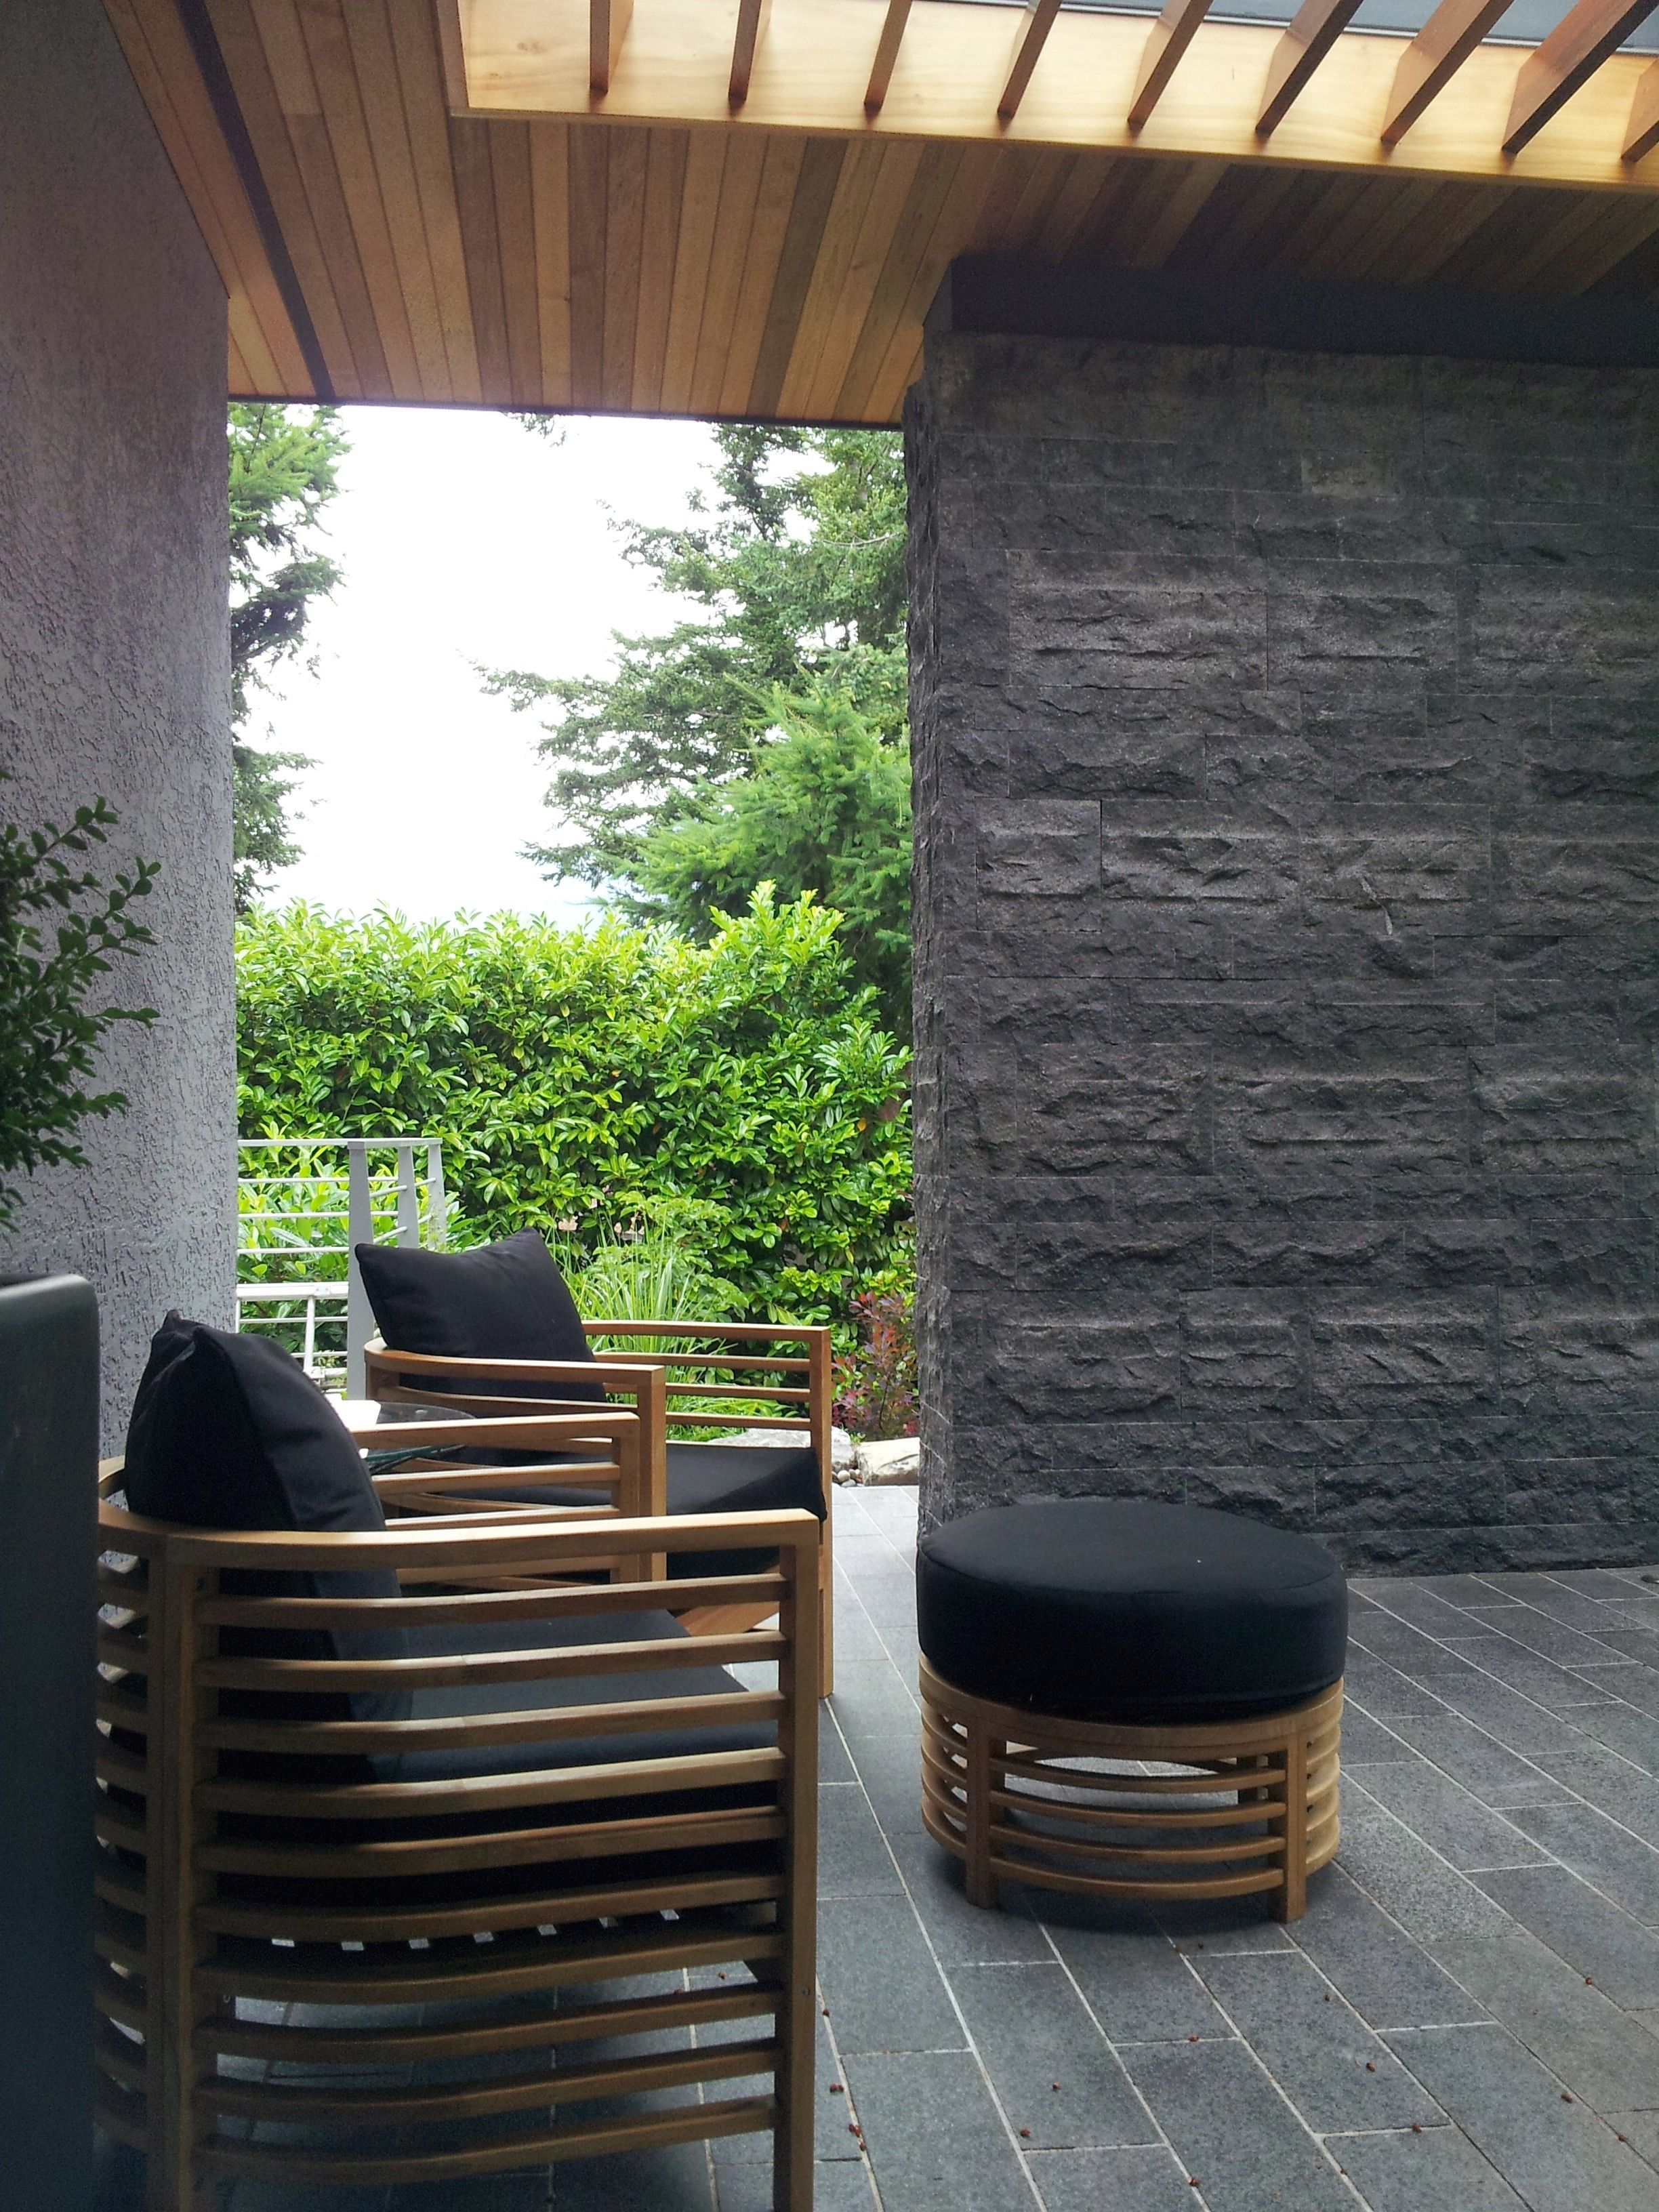 Black Basalt Stone Wall : West van residence front yard and house renovation